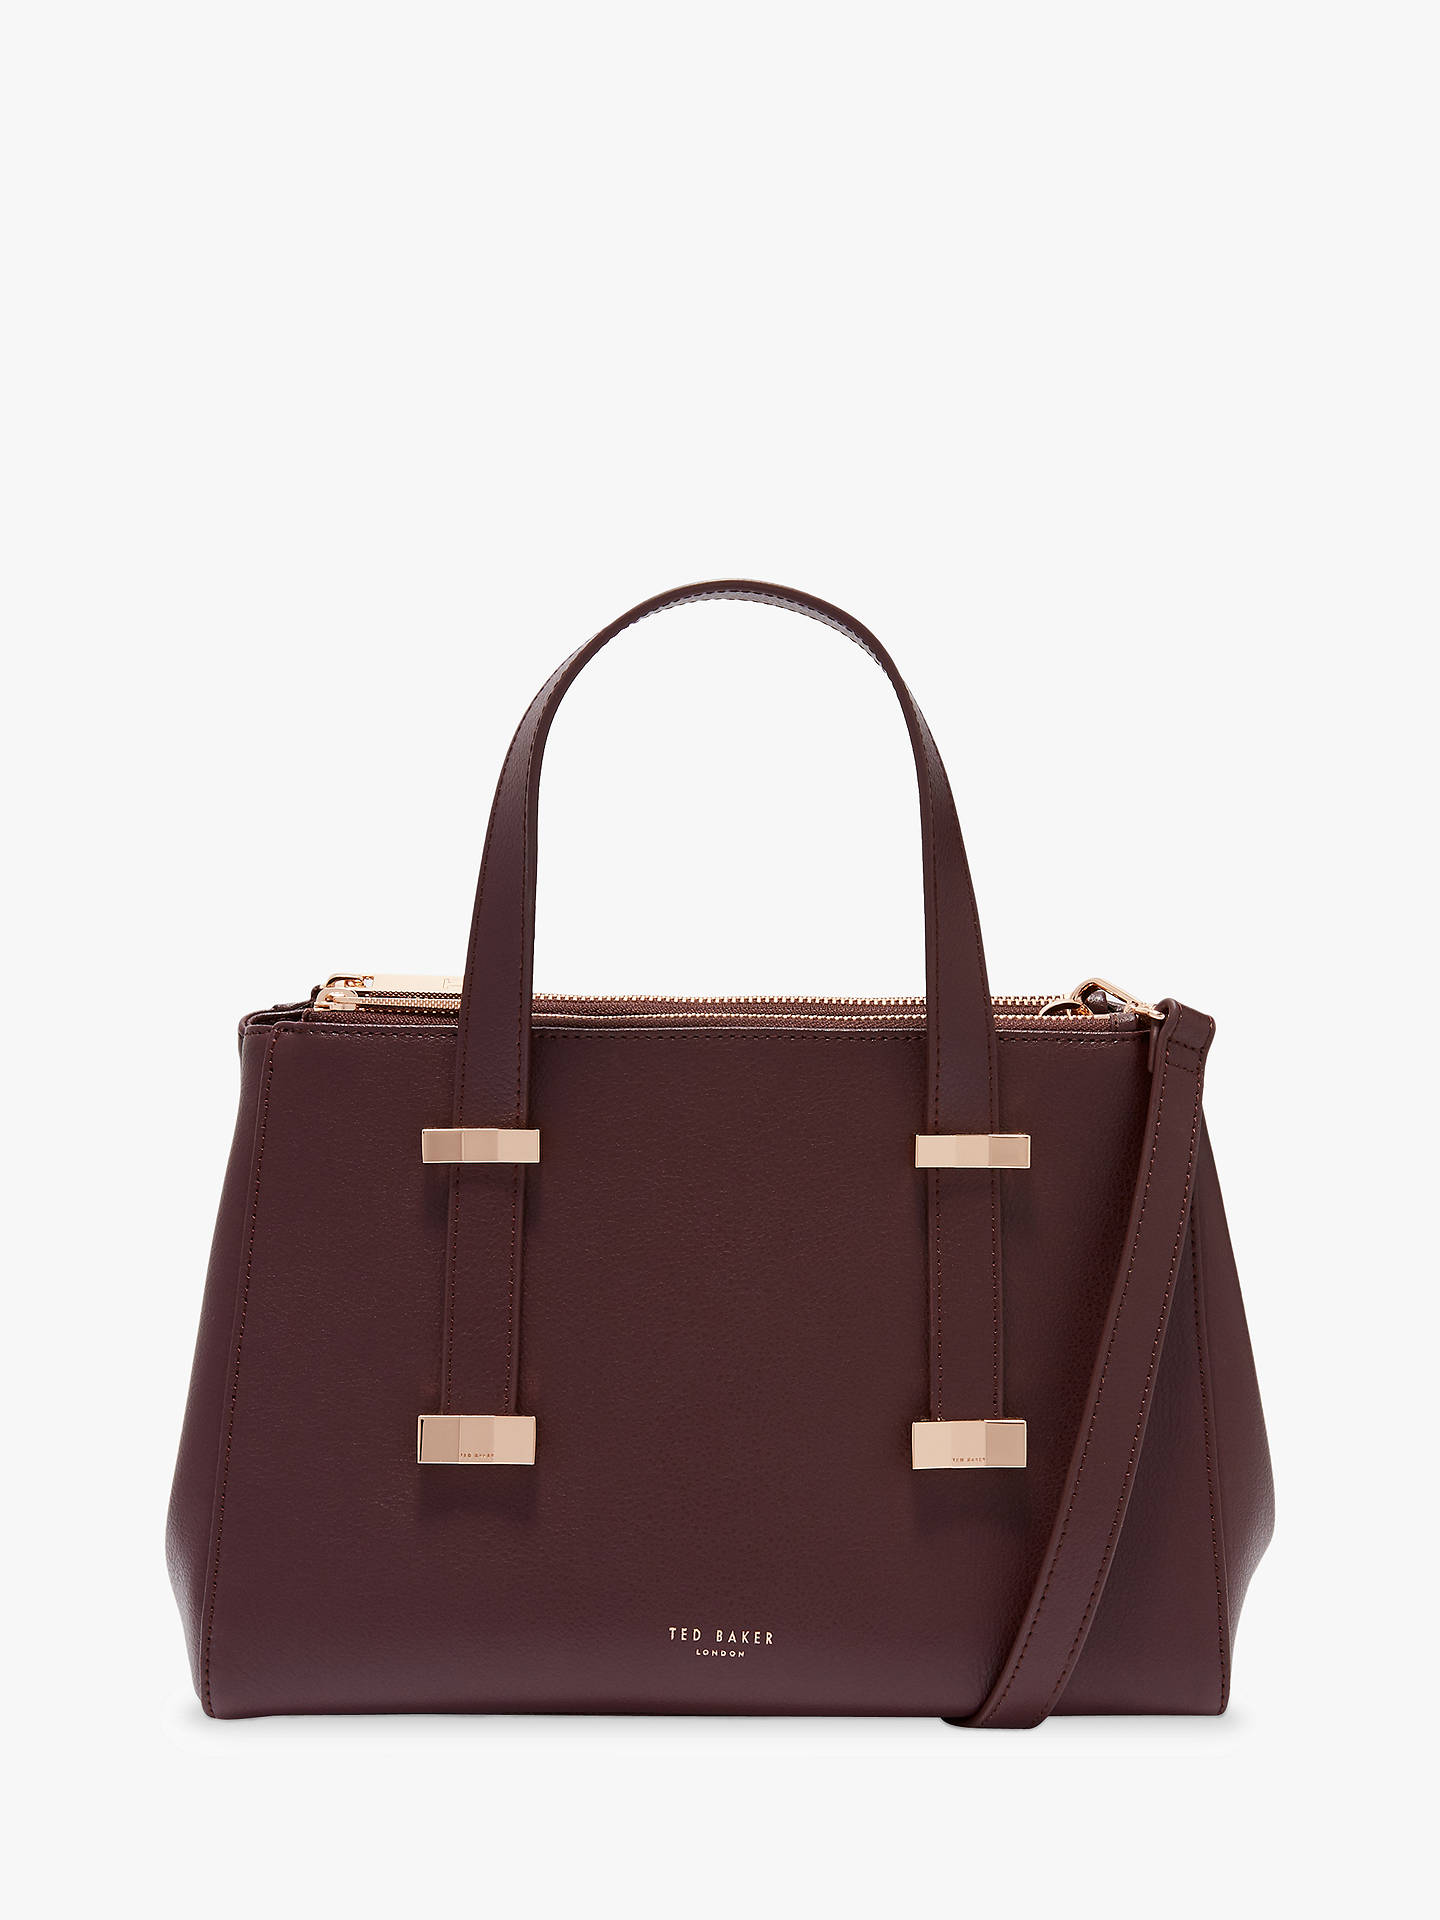 cdeed4fd092f1 Buy Ted Baker Alyssaa Small Leather Tote Bag